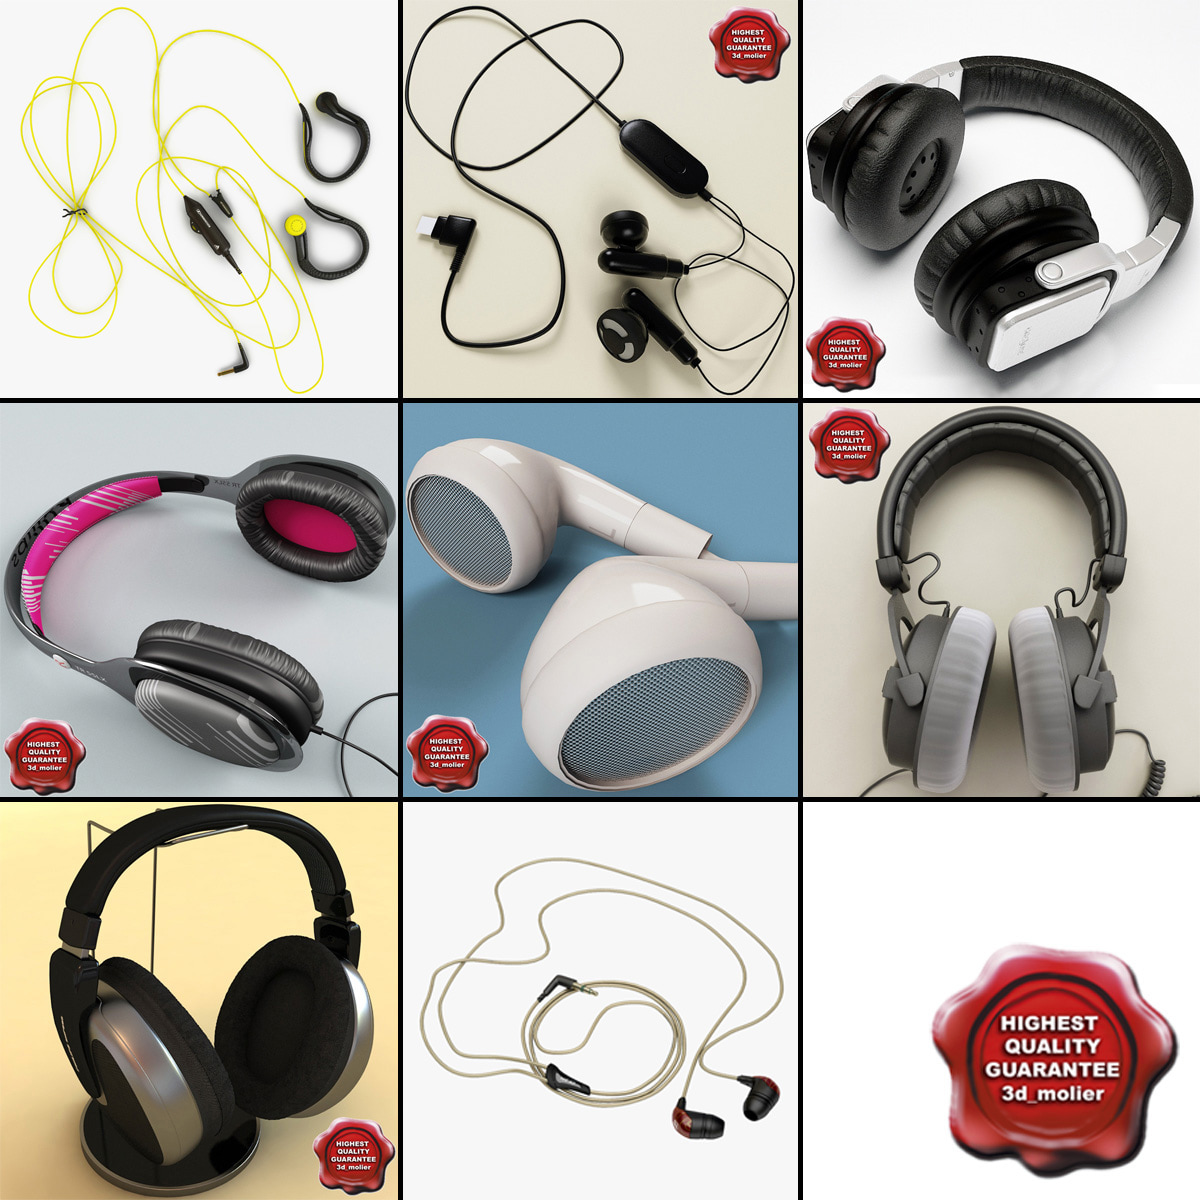 Headphones_Collection_V4_000.jpg